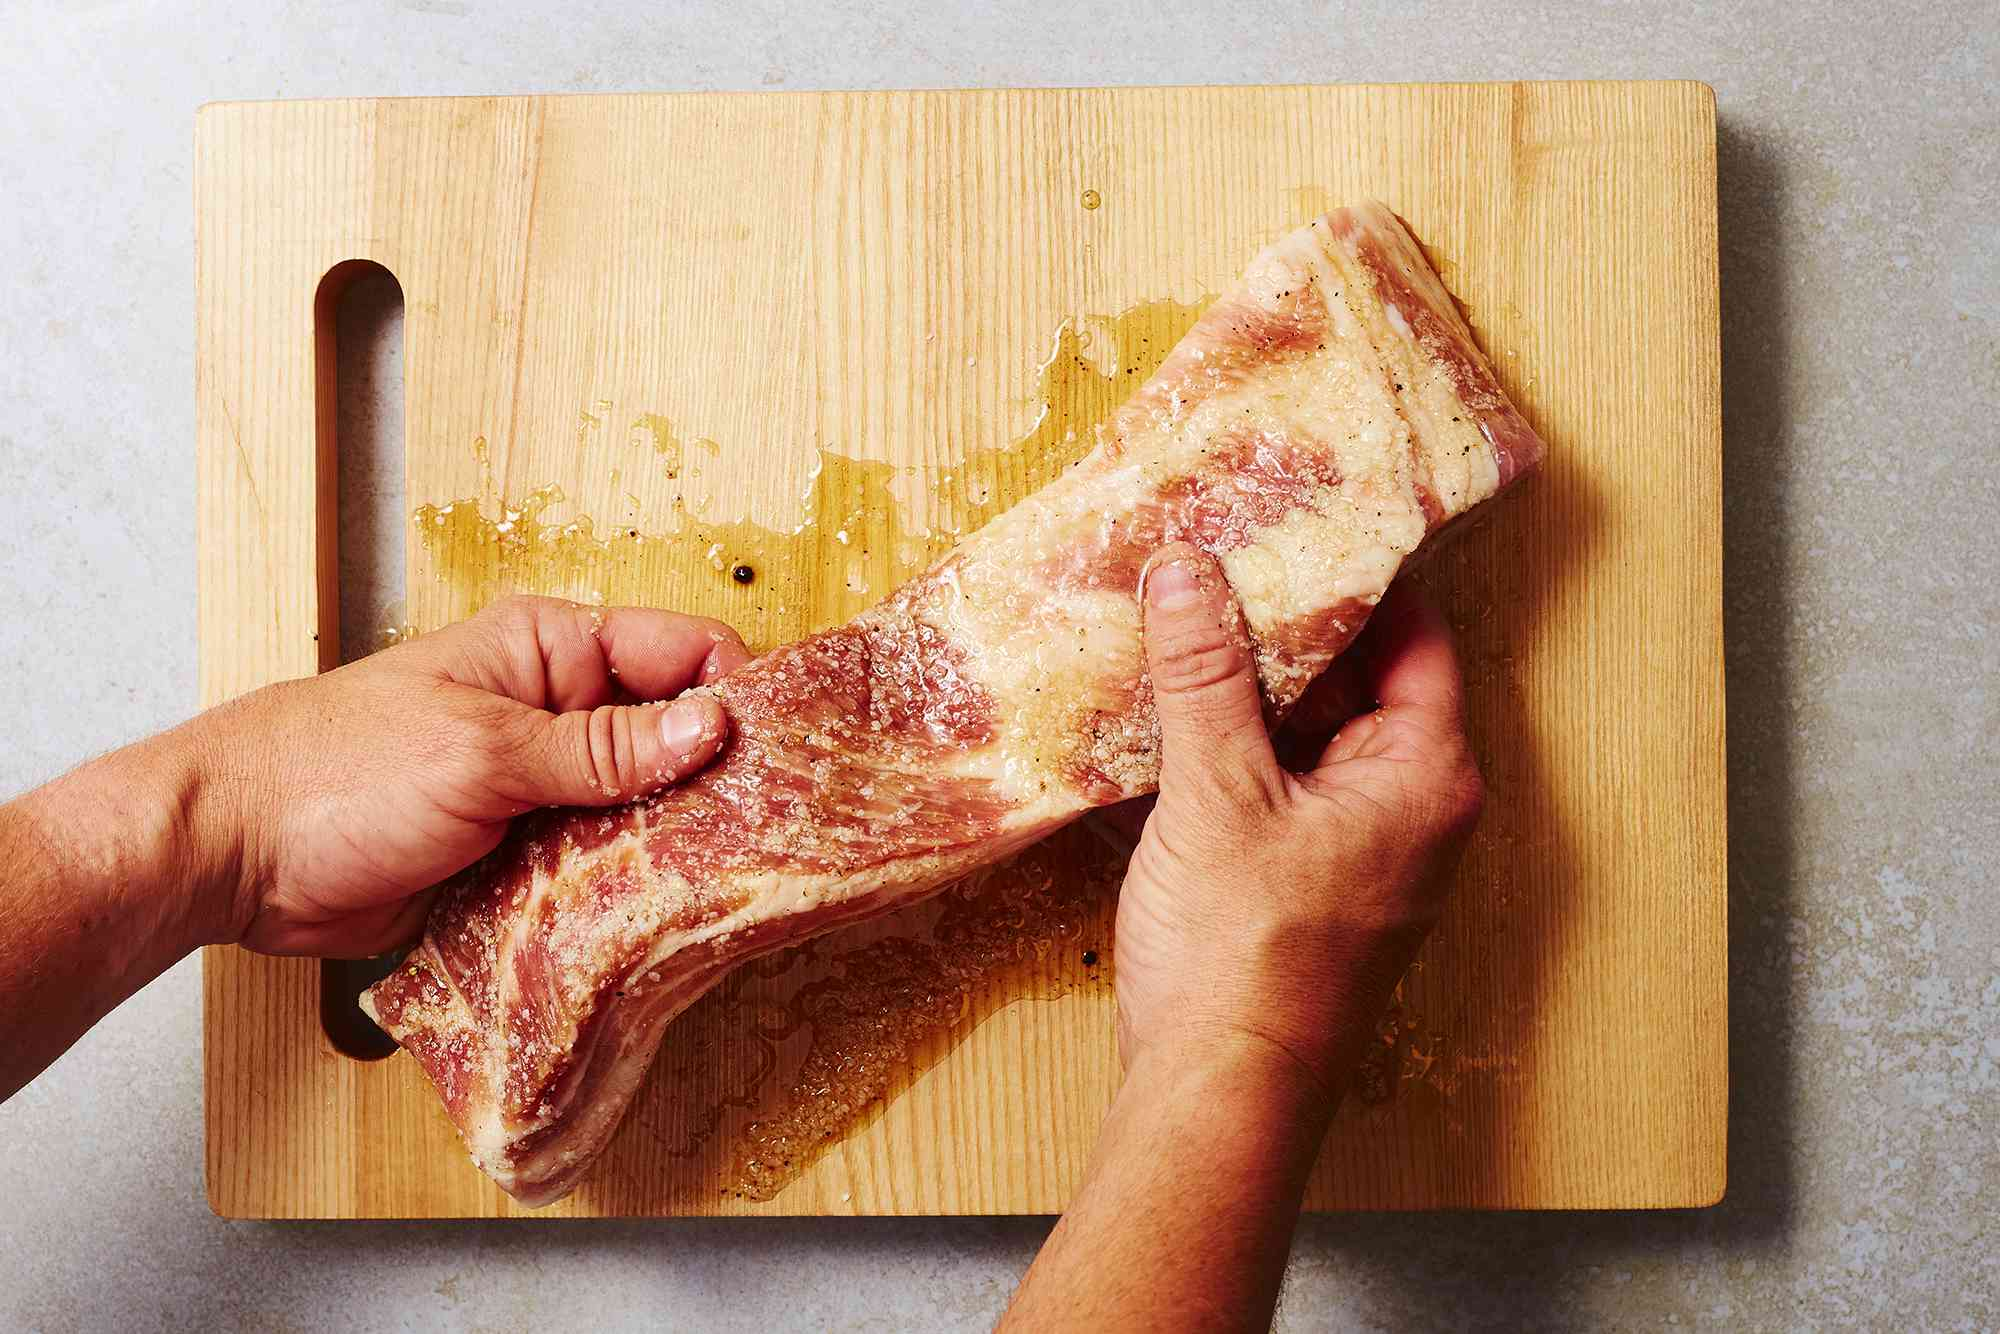 Rub the seasoning mixture into all sides of the pork belly